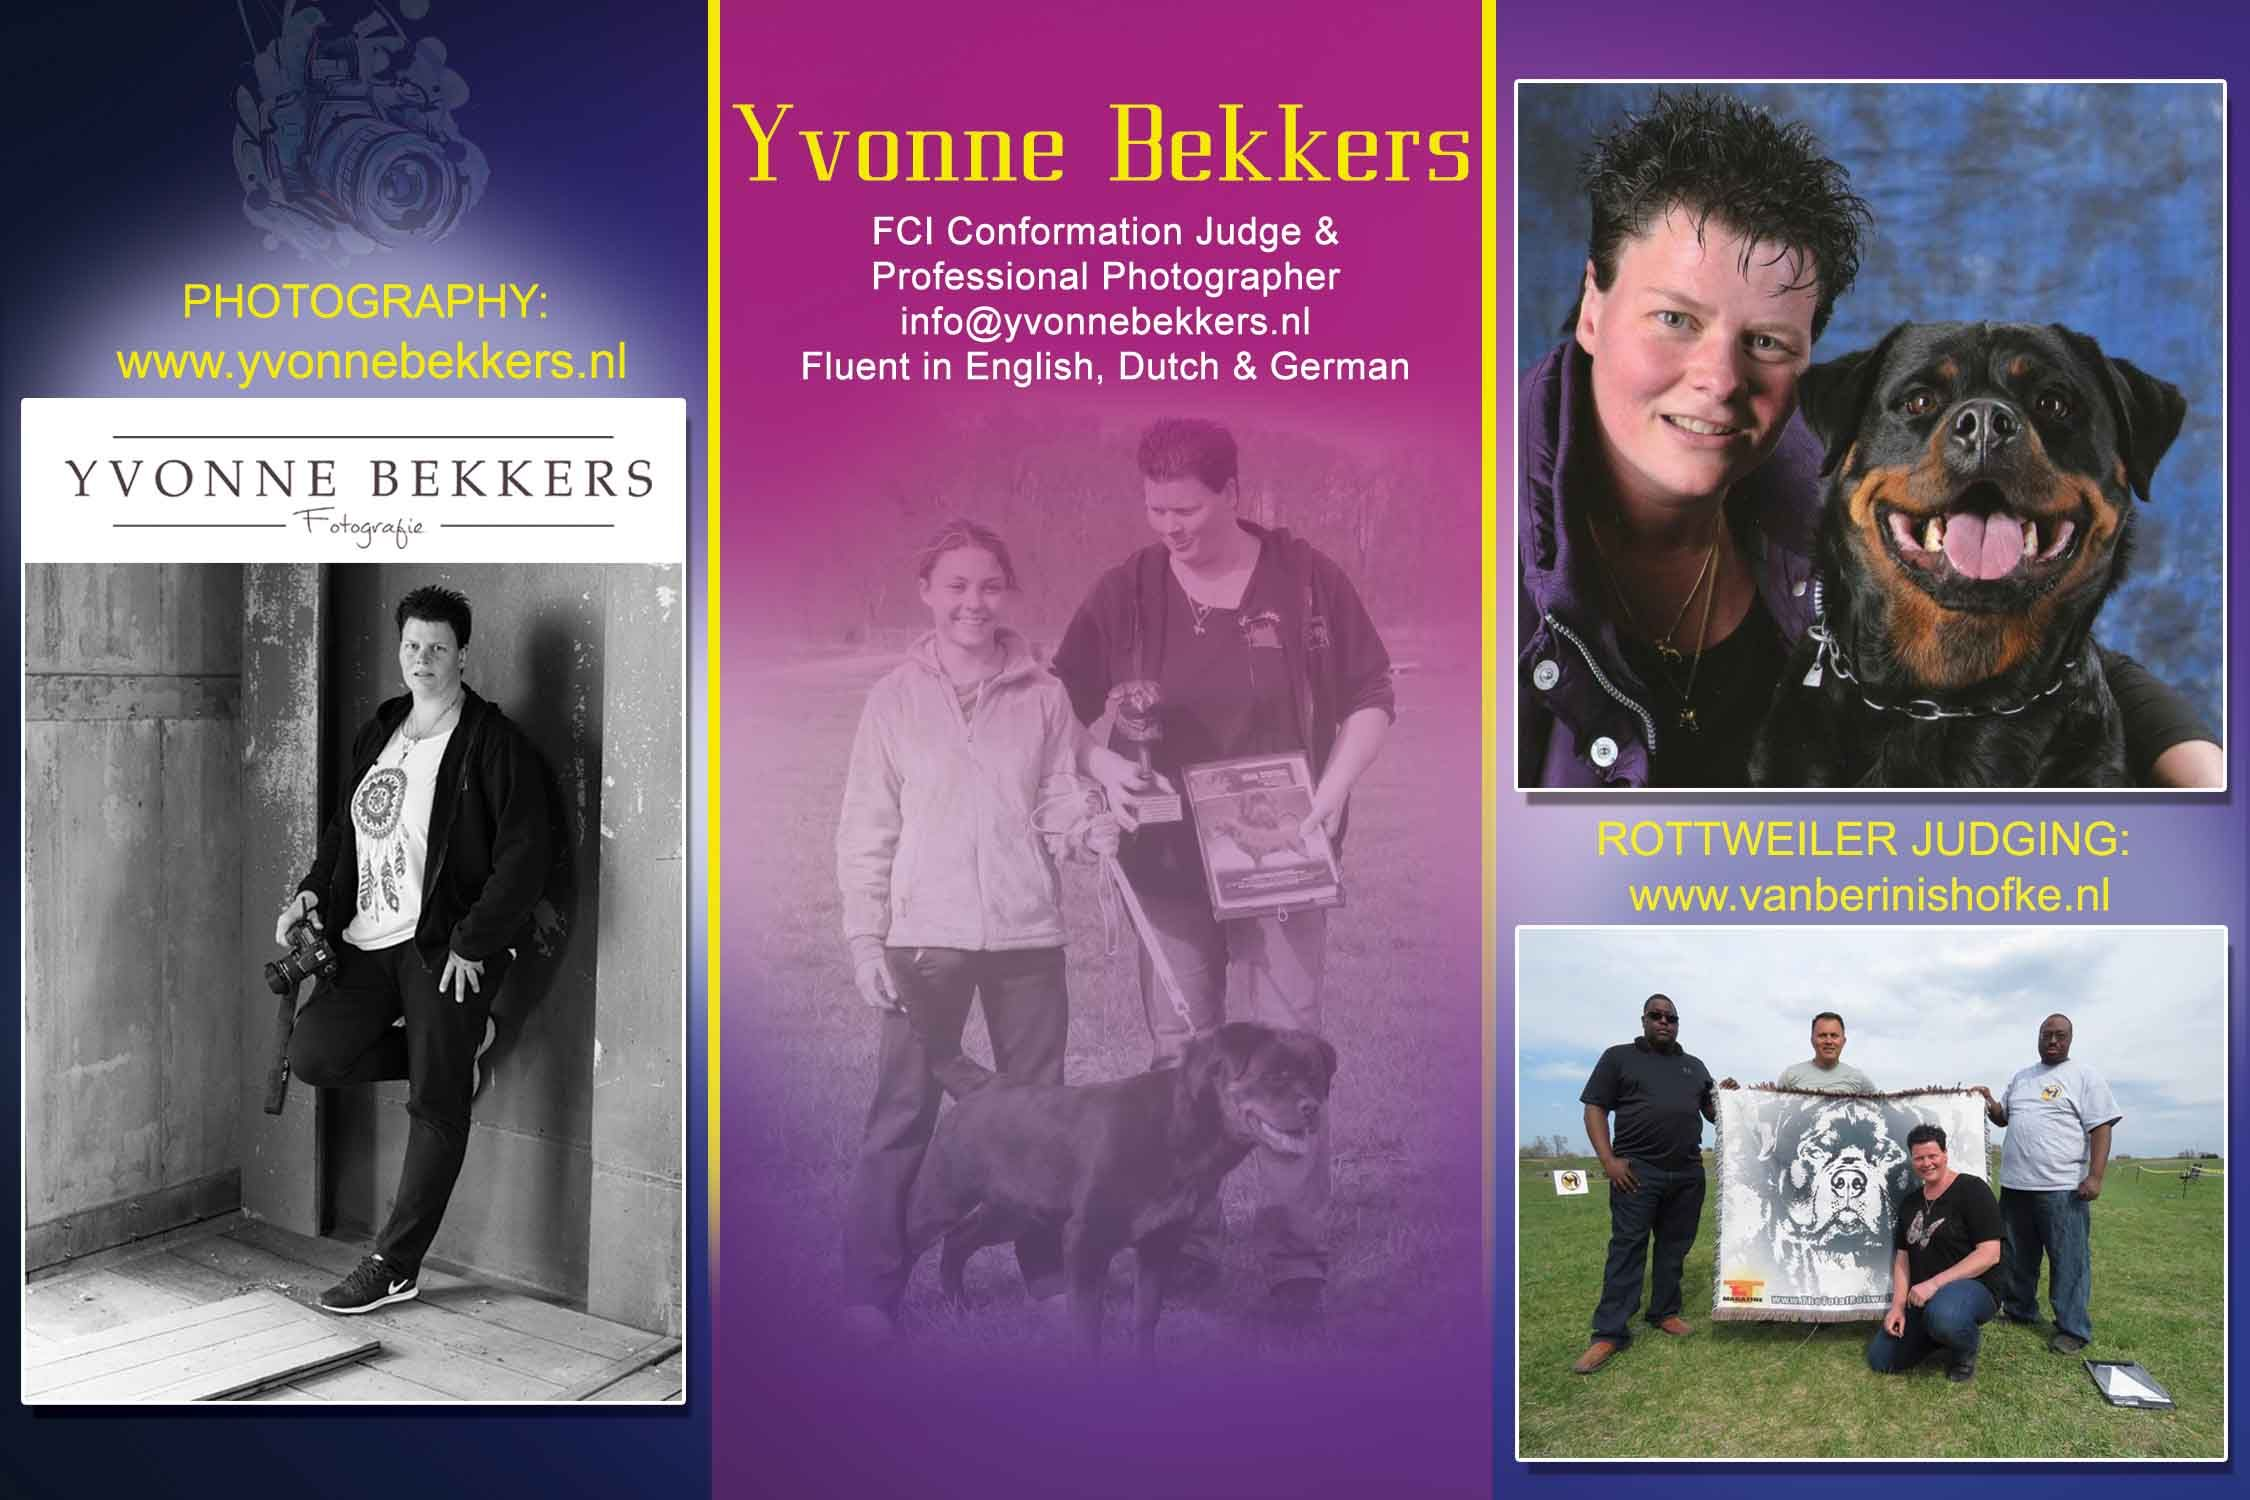 Yvonne Bekkers Fci Conformation Judge Professional Photographer